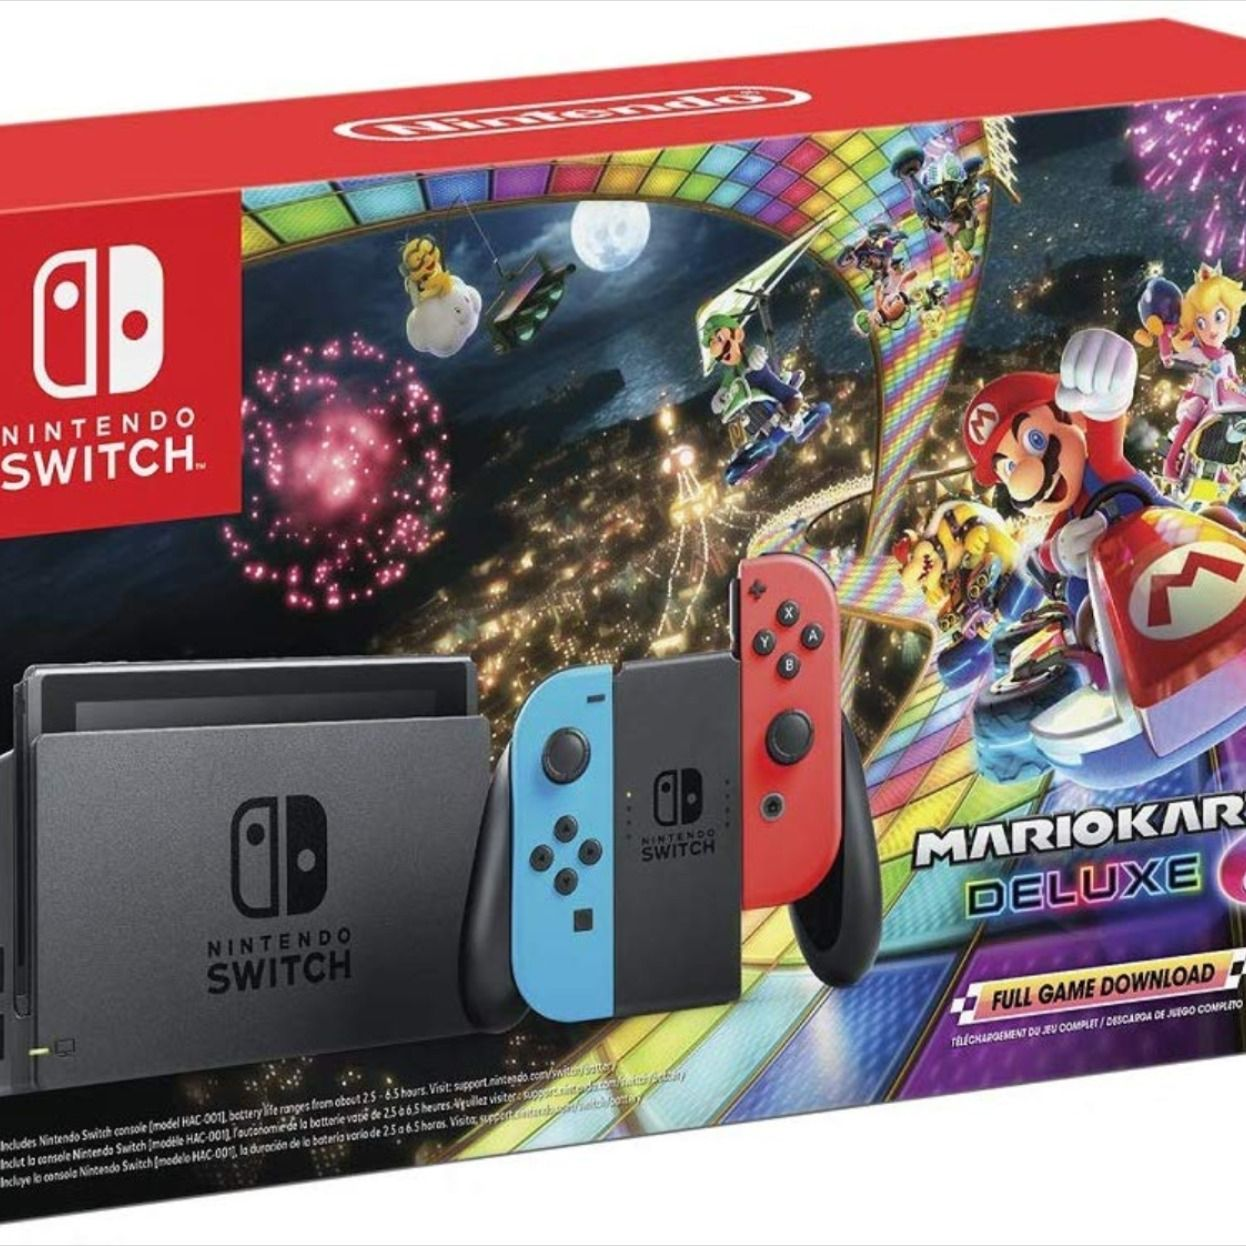 Nintendo Switch W Neon Blue Neon Red Joy Con Mario Kart 8 Deluxe Full Game Download Switch In 2020 Nintendo Switch Accessories Download Games Full Games